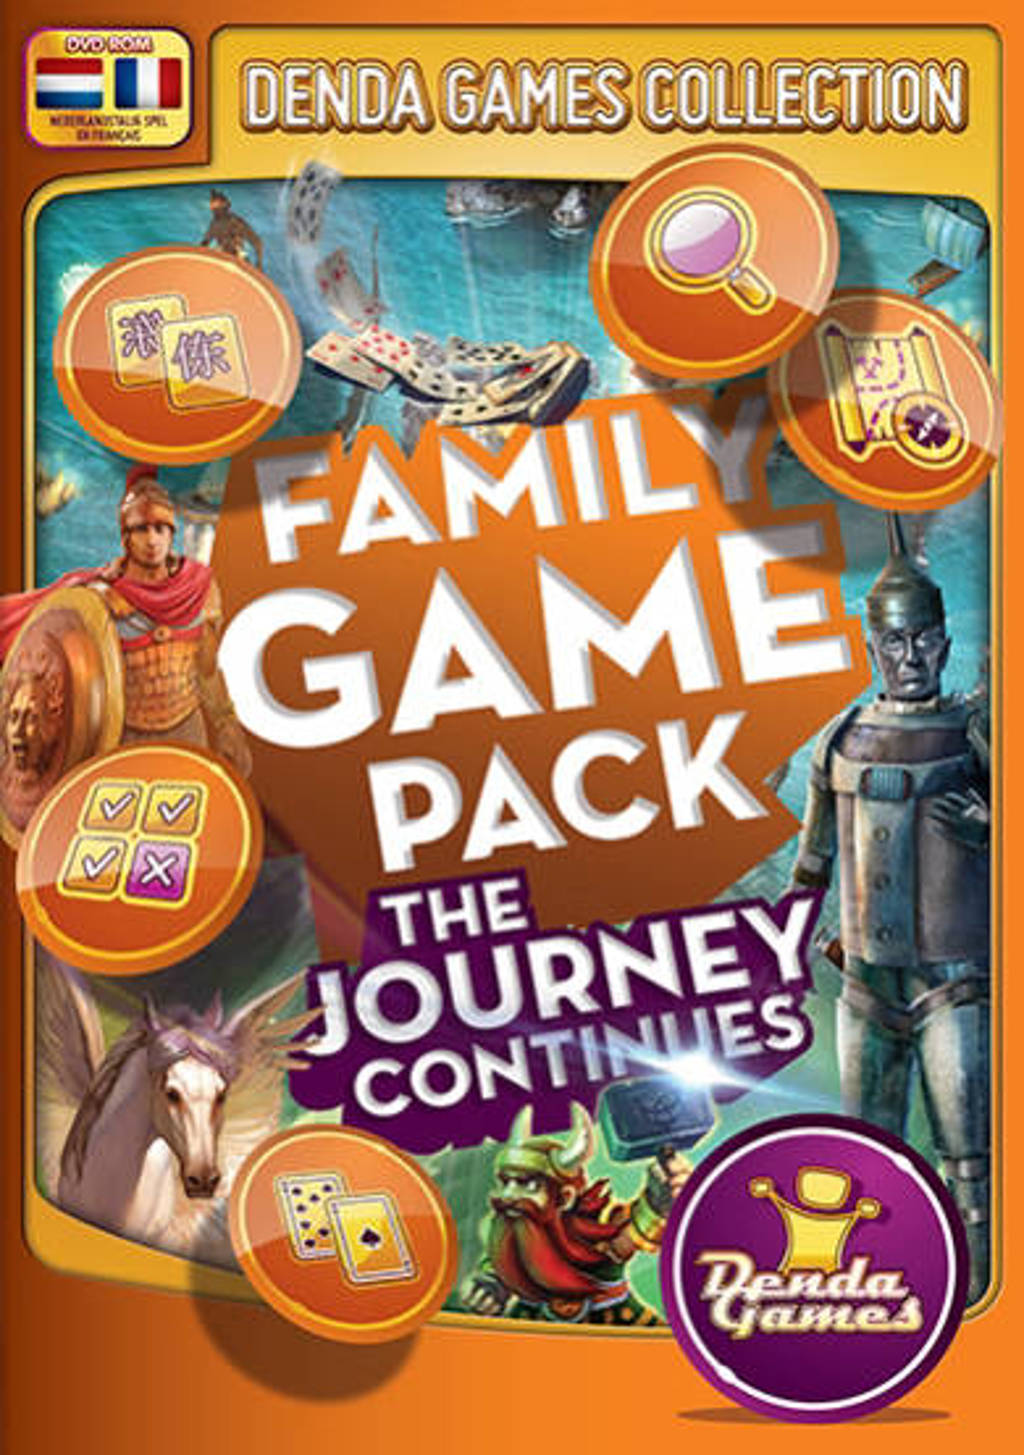 Family game pack - The journey continues (PC)